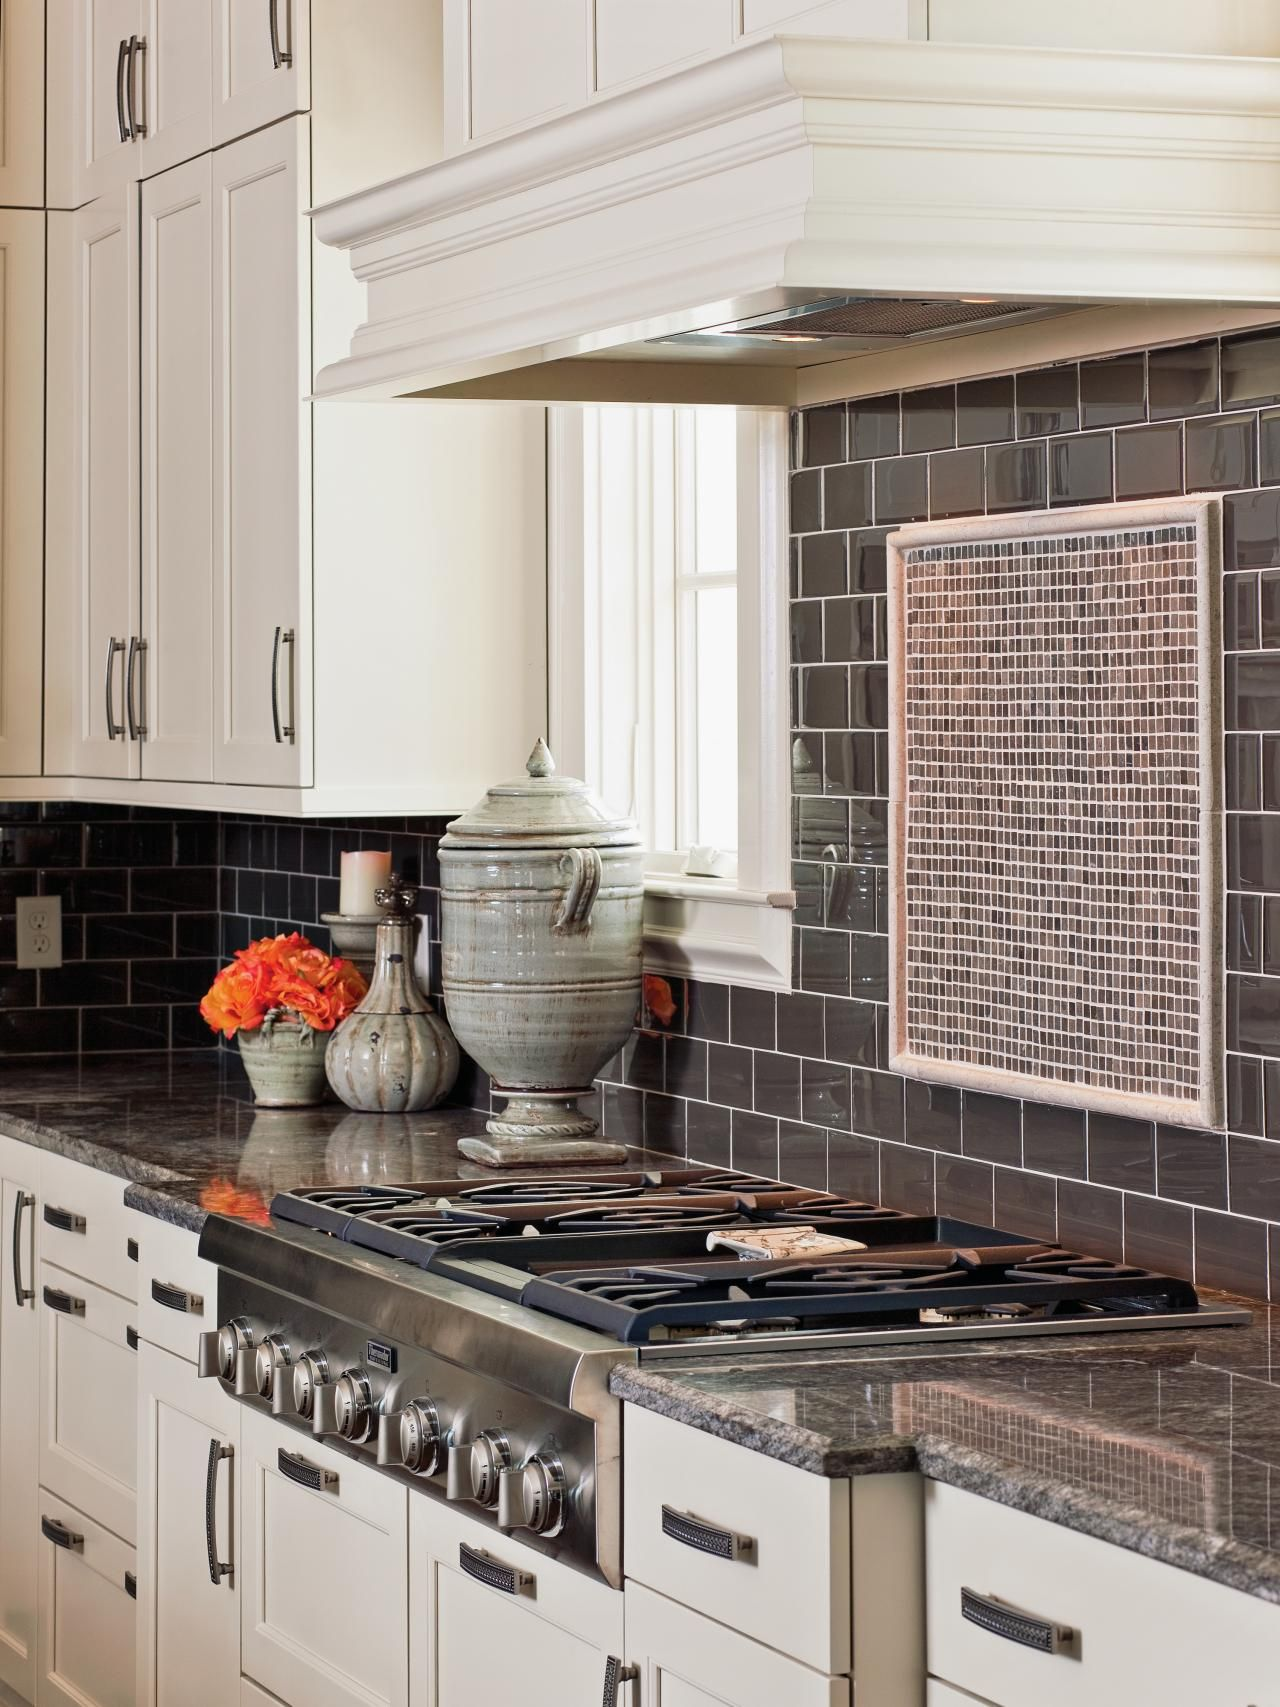 In this beautiful kitchen, smoky gray subway tile comes across as polished  without being gloomy